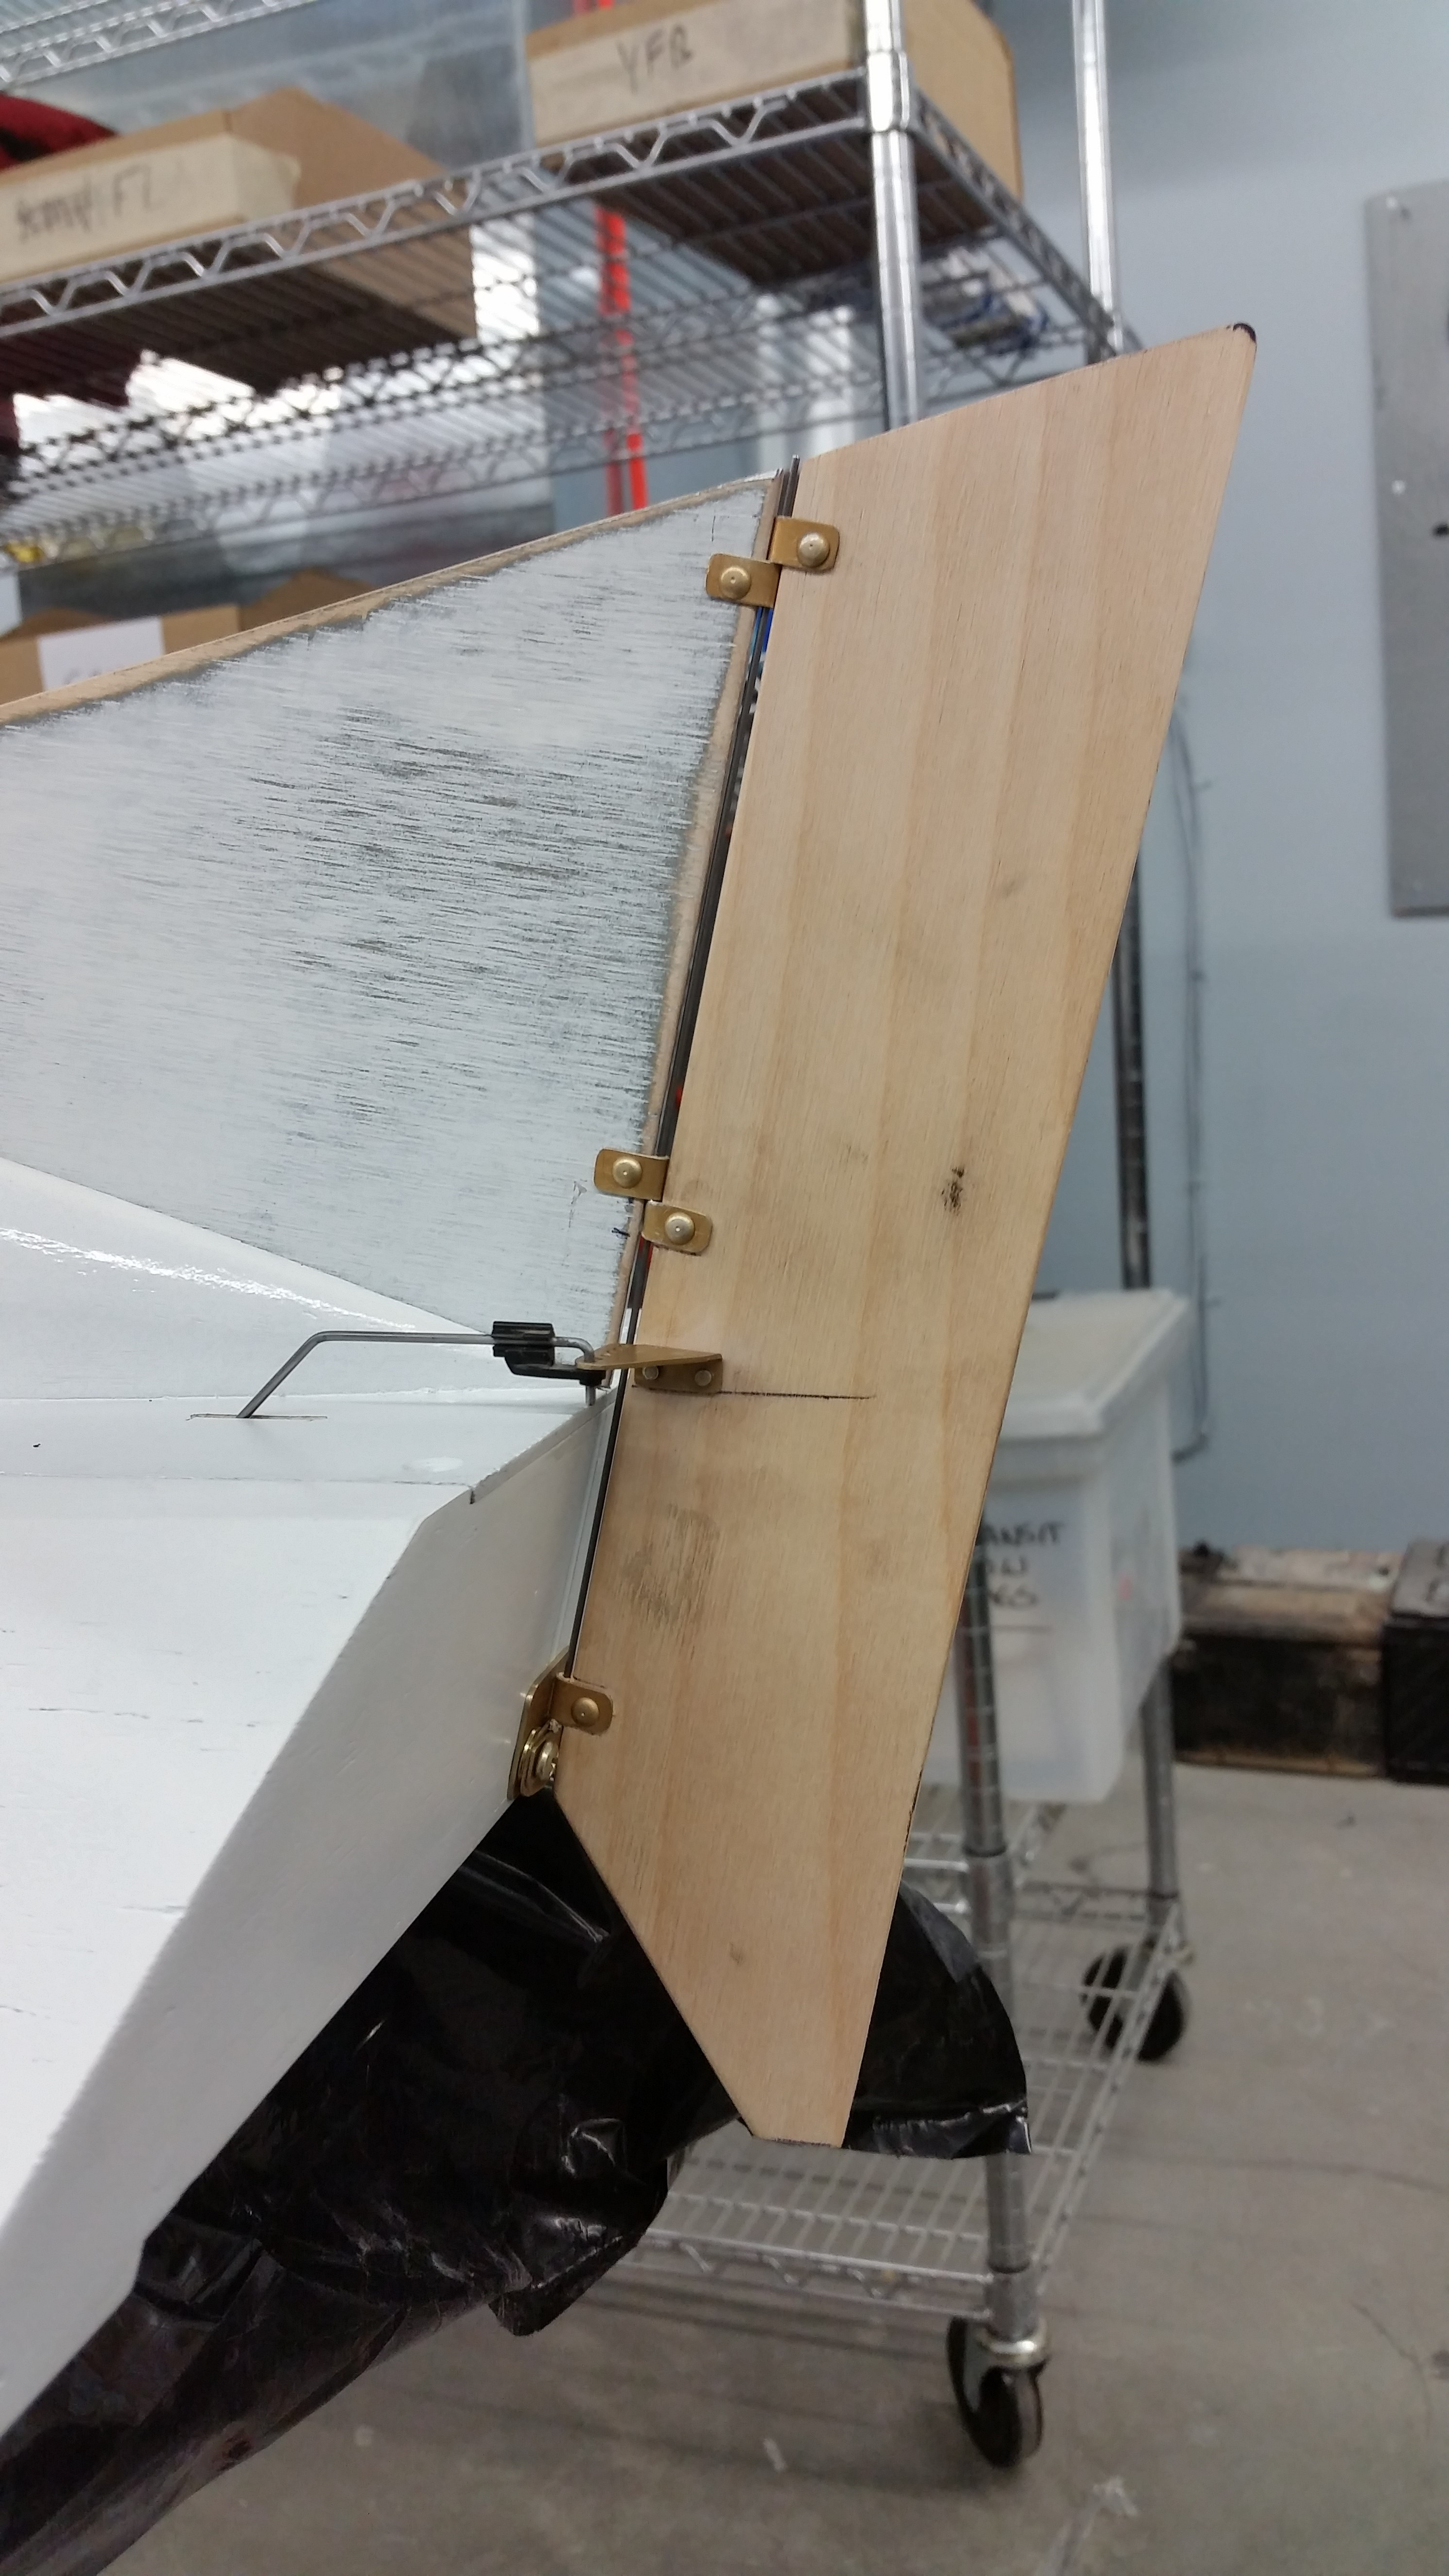 Click image for larger version  Name:rudder1.jpg Views:205 Size:1.89 MB ID:2119543